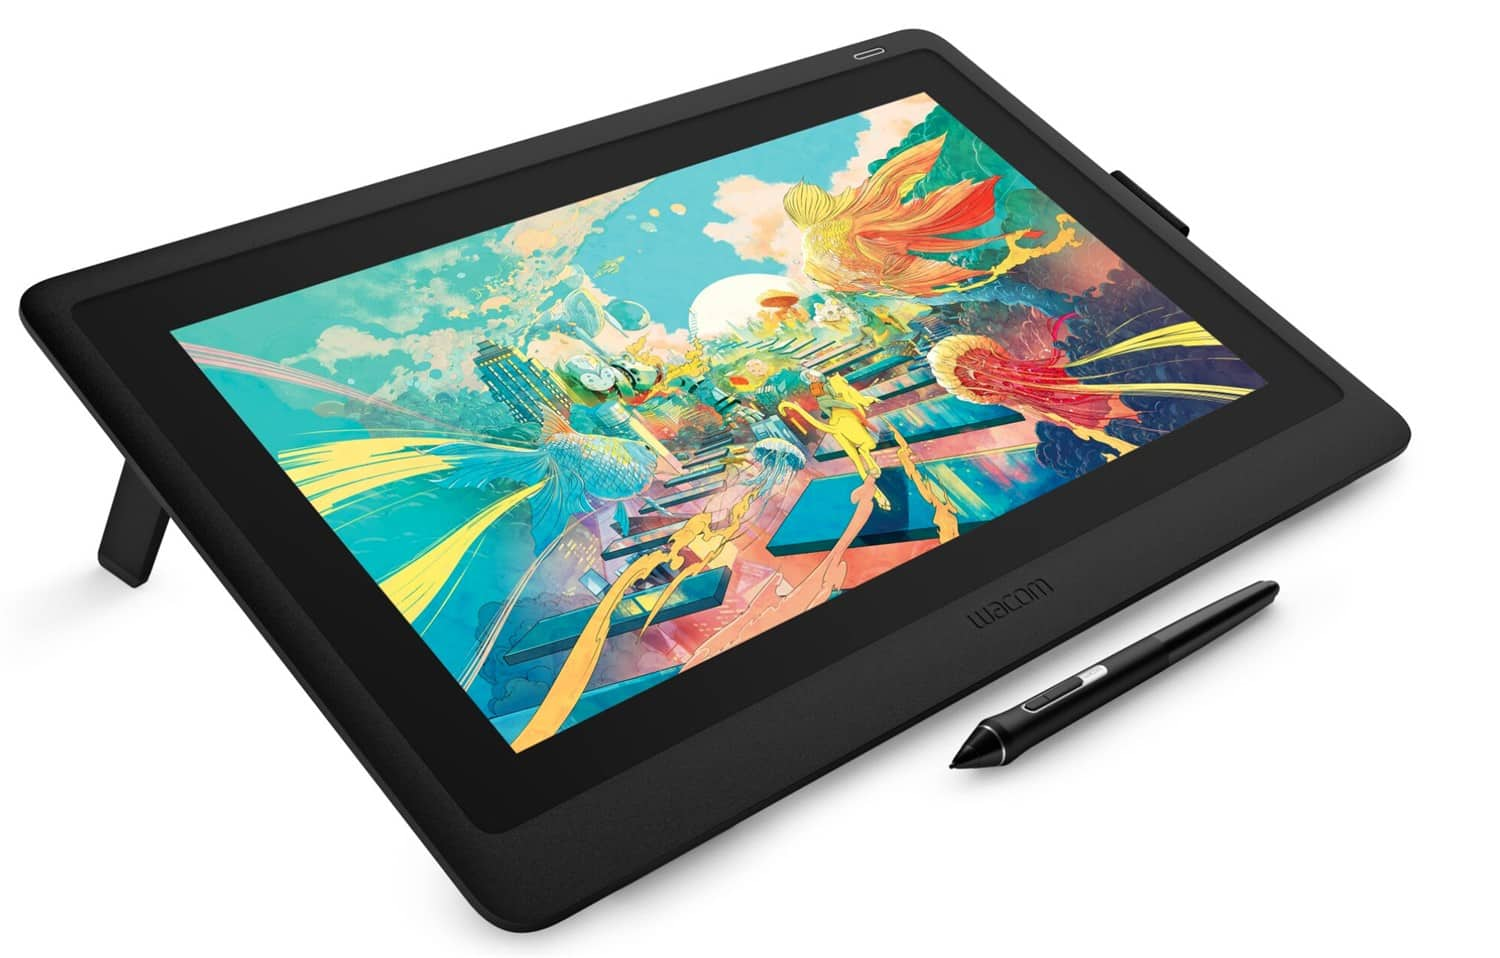 Wacom launches Cintiq 16, a fantastic tool for digital sketching, illustration, and technical drawing